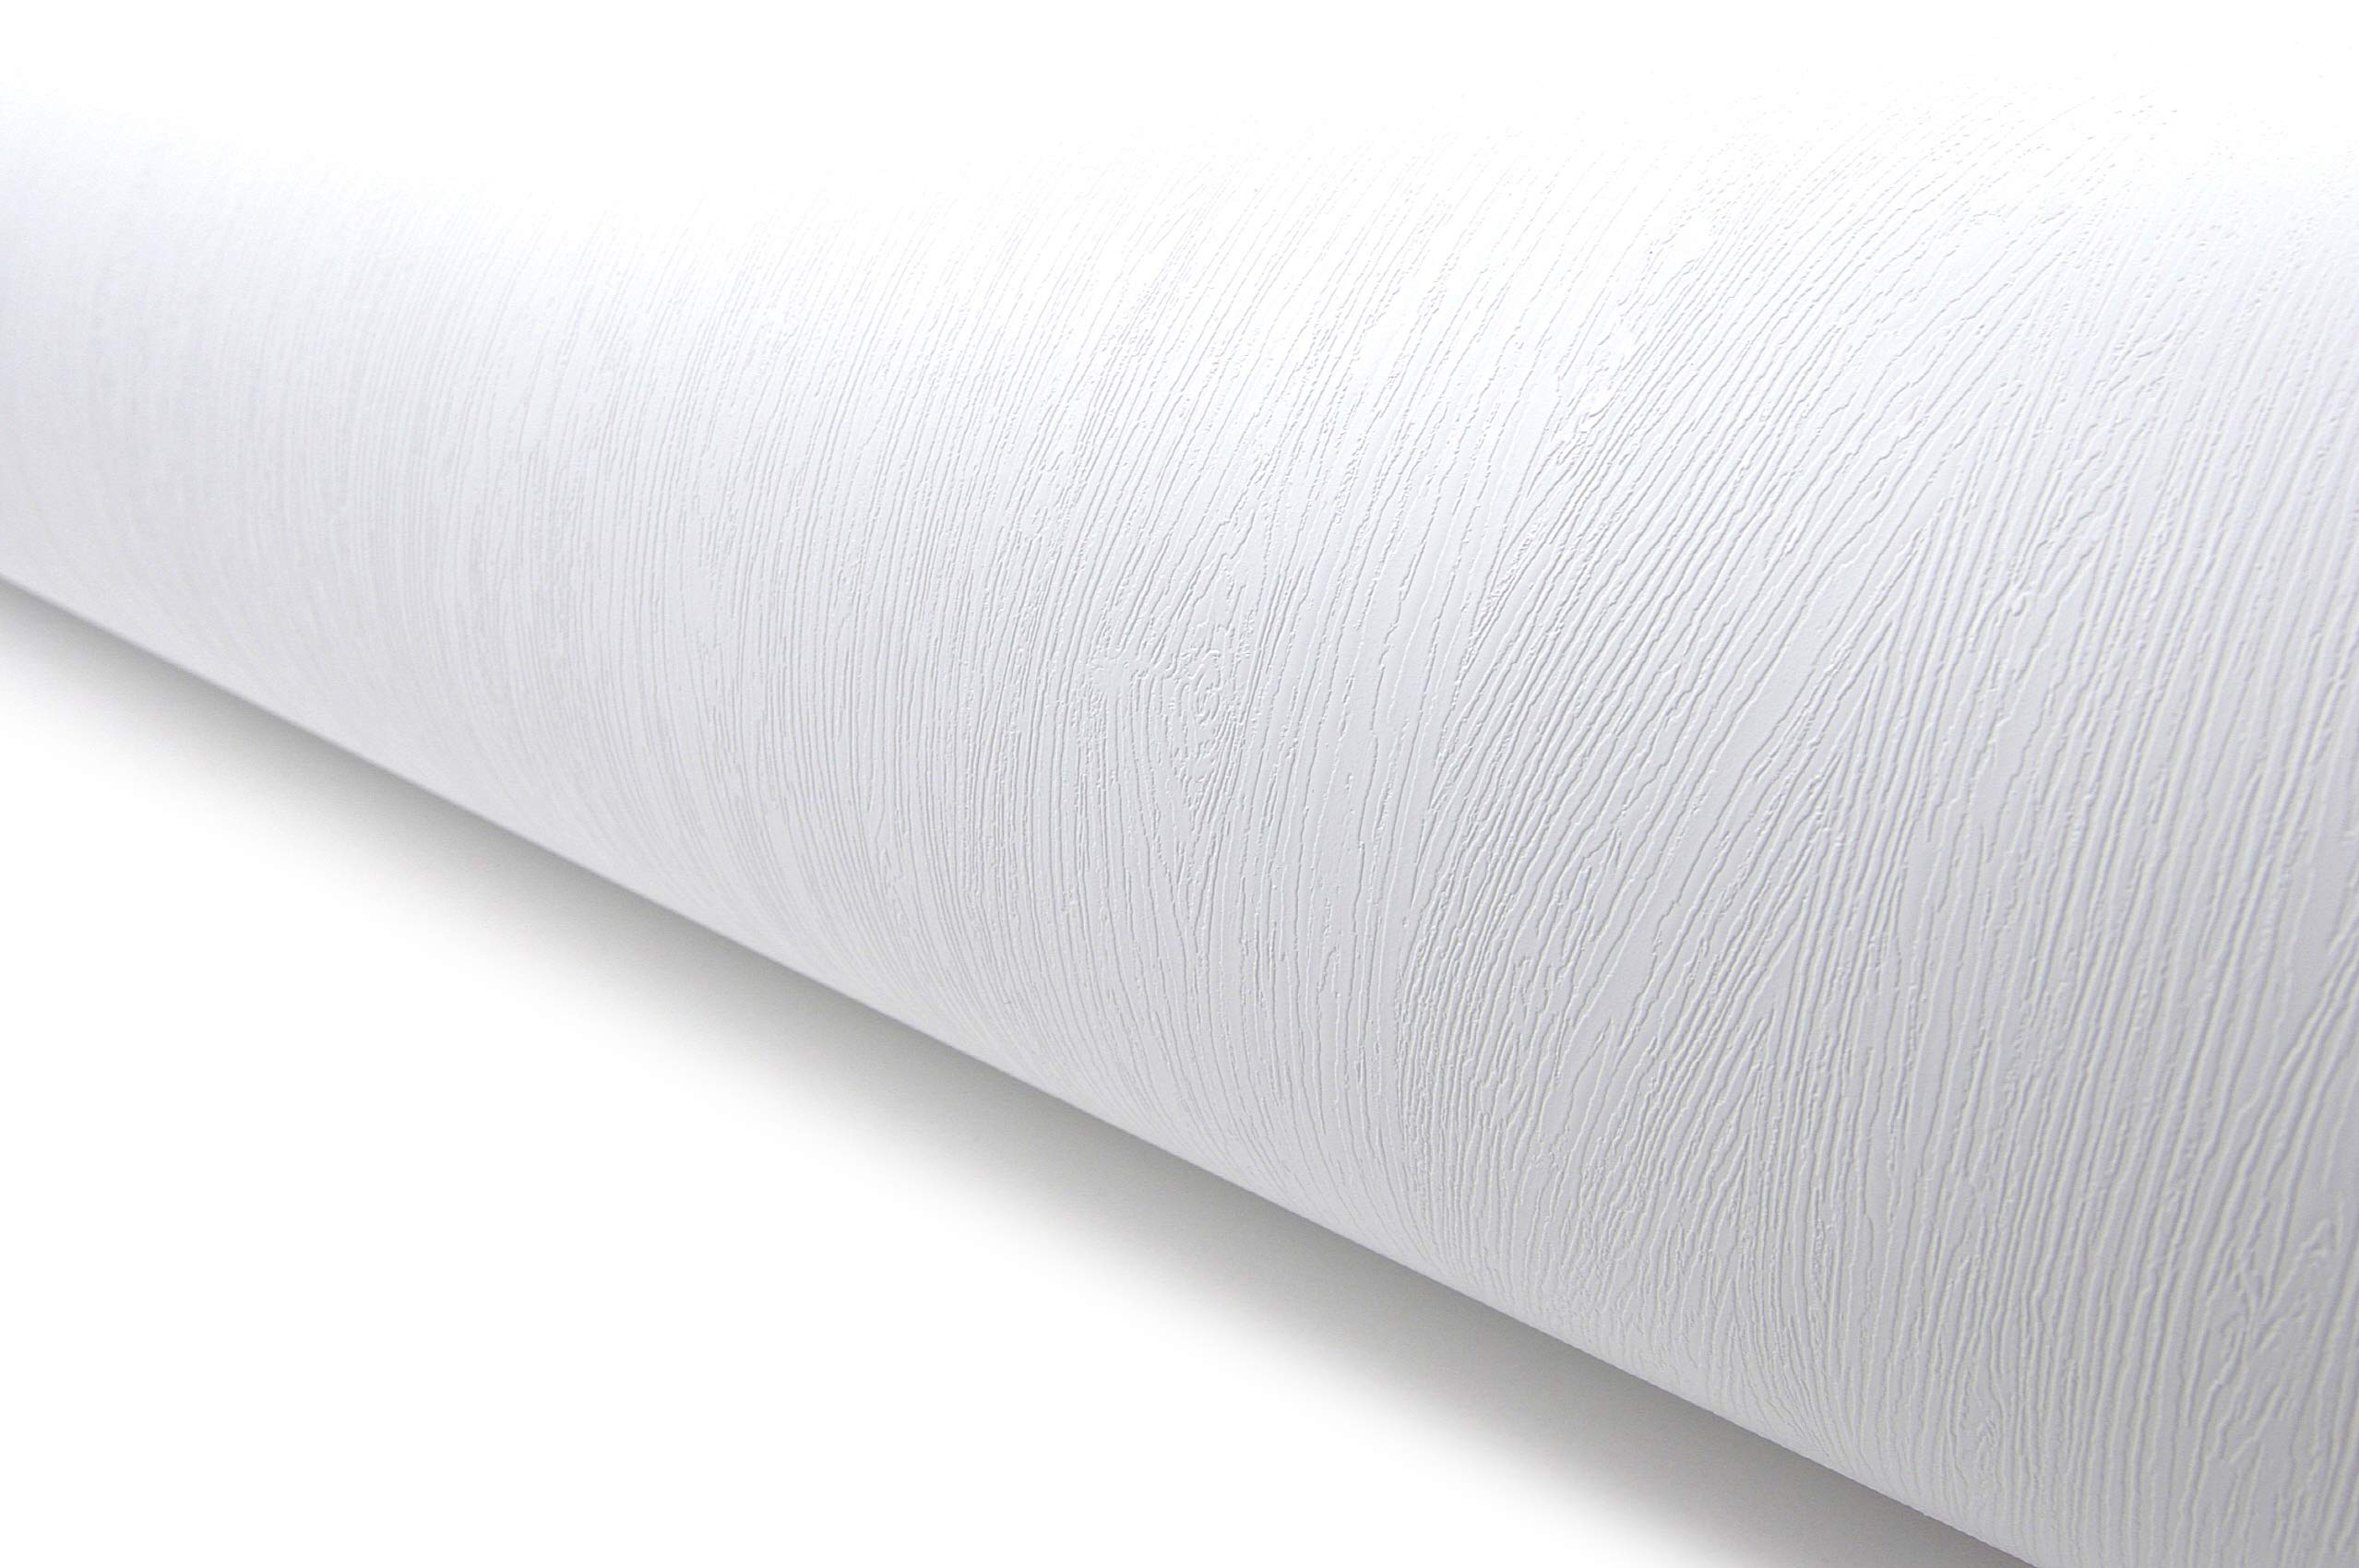 Wood Pattern Texture Contact Paper Film Vinyl Self Adhesive Peel-Stick Removable (VBS841-2(White 9.84ft))